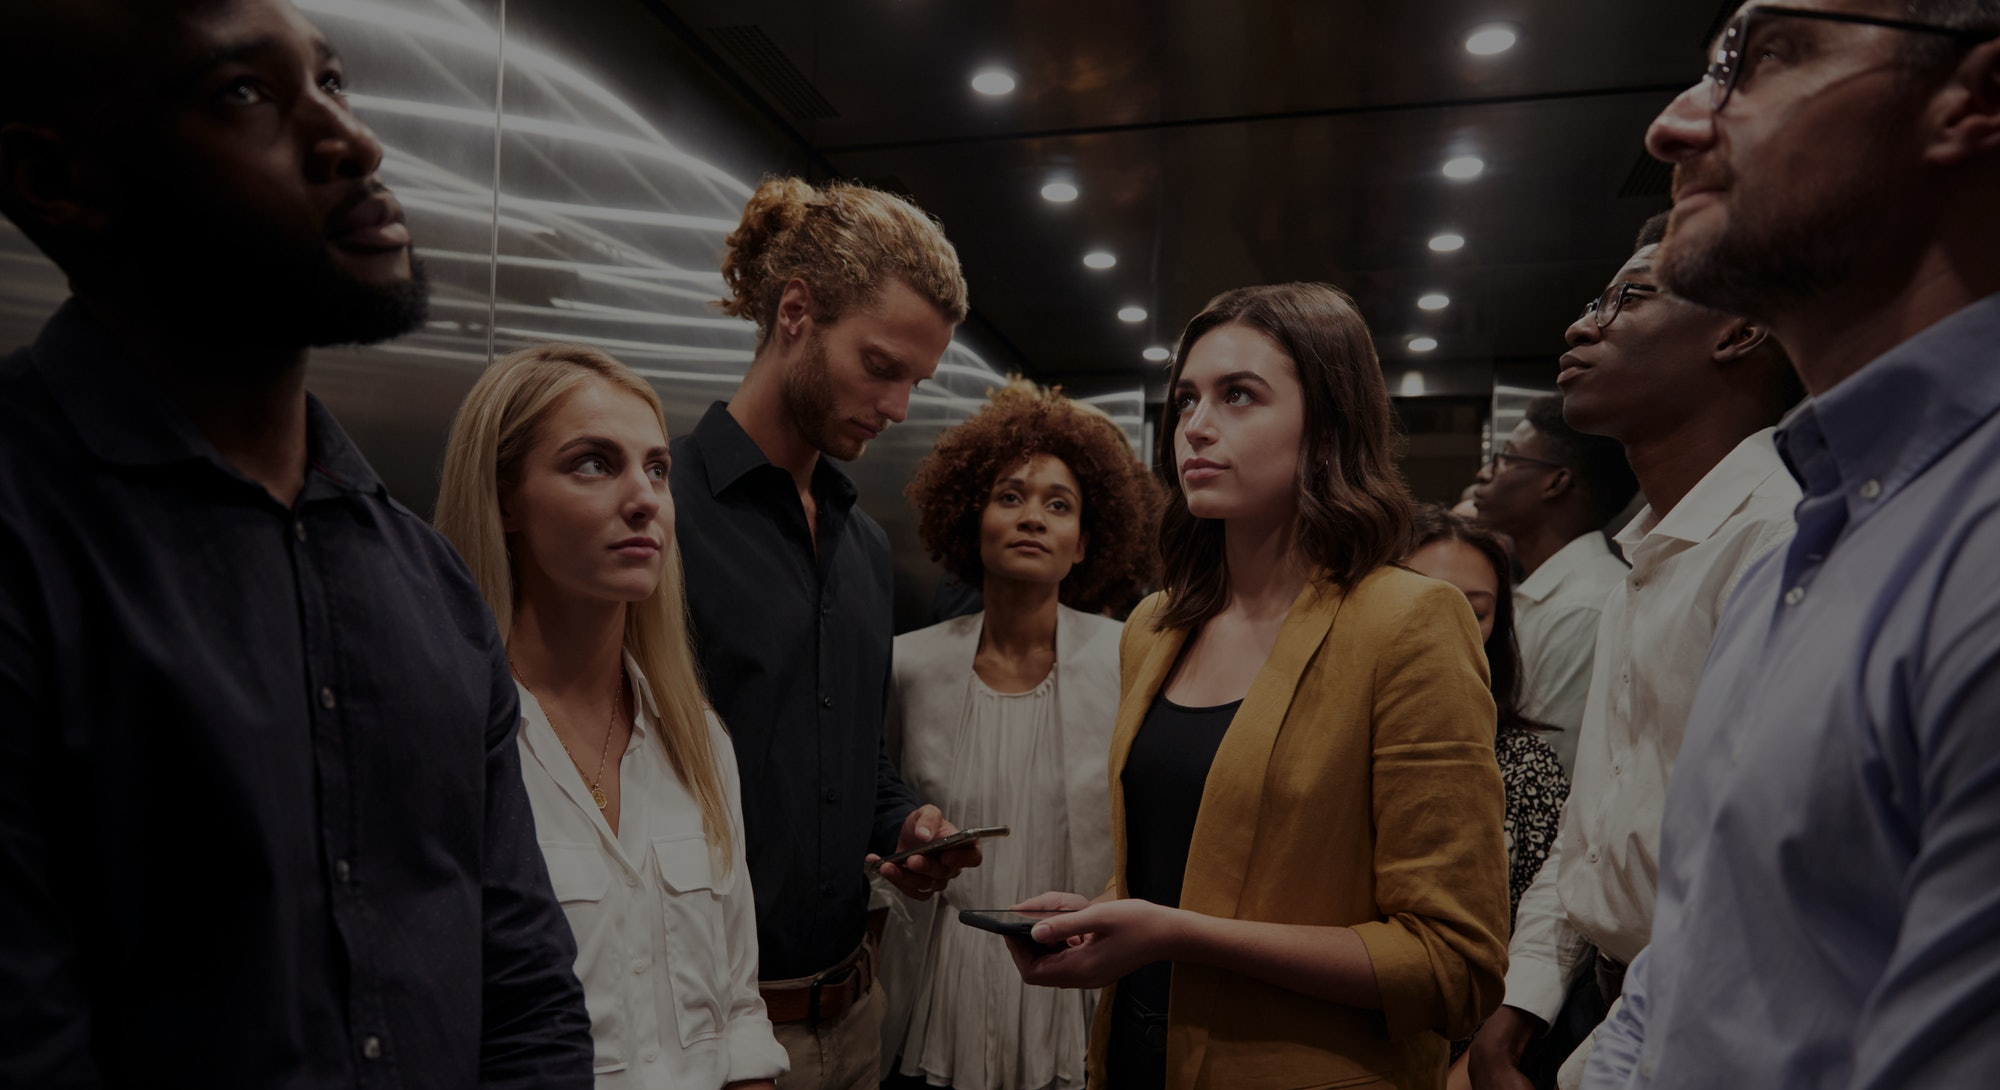 Work colleagues stand waiting together in an elevator at their office